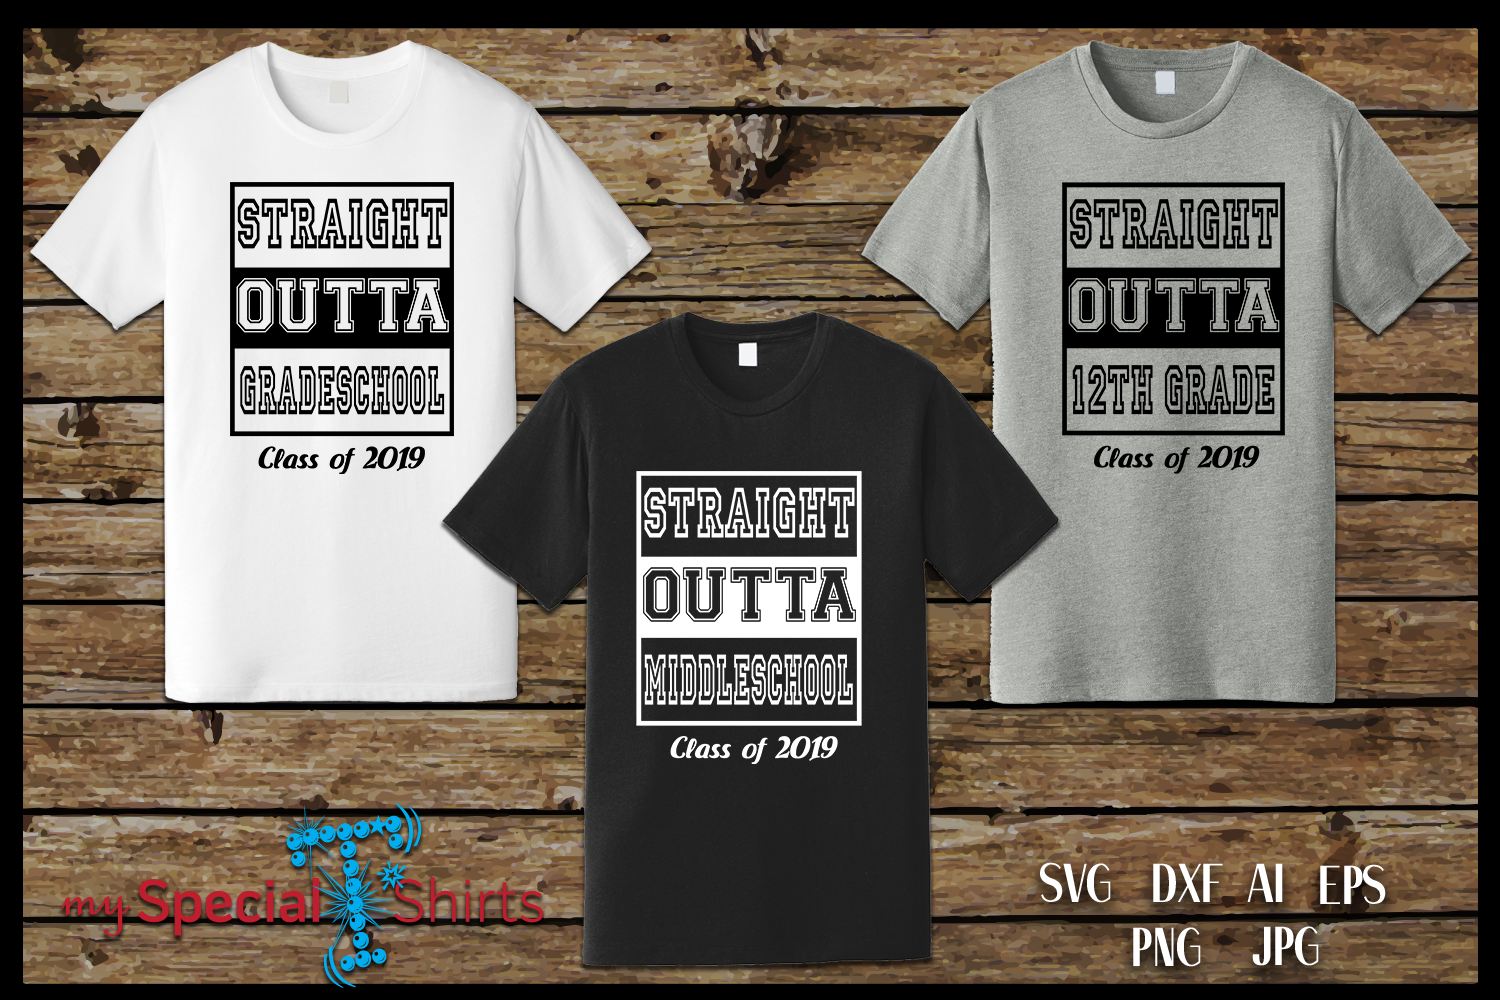 Straight Outta PACKAGE Class of 2019 Graduation SVG EPS DFX example image 2